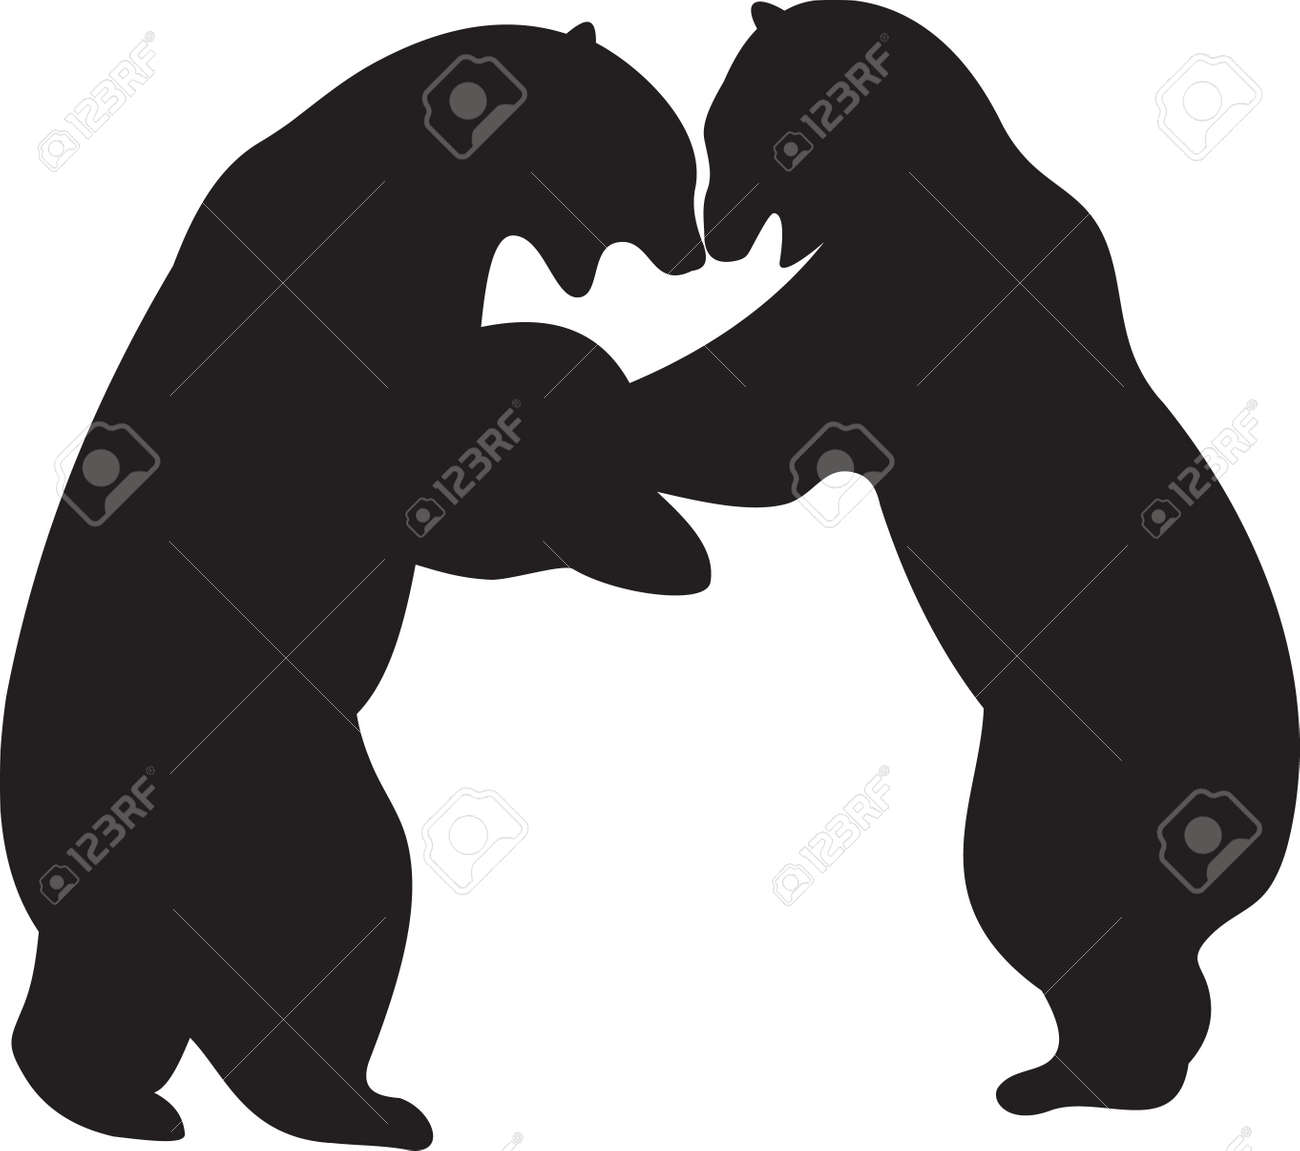 bear silhouette stock photos royalty free bear silhouette images  - bear silhouette bear vector